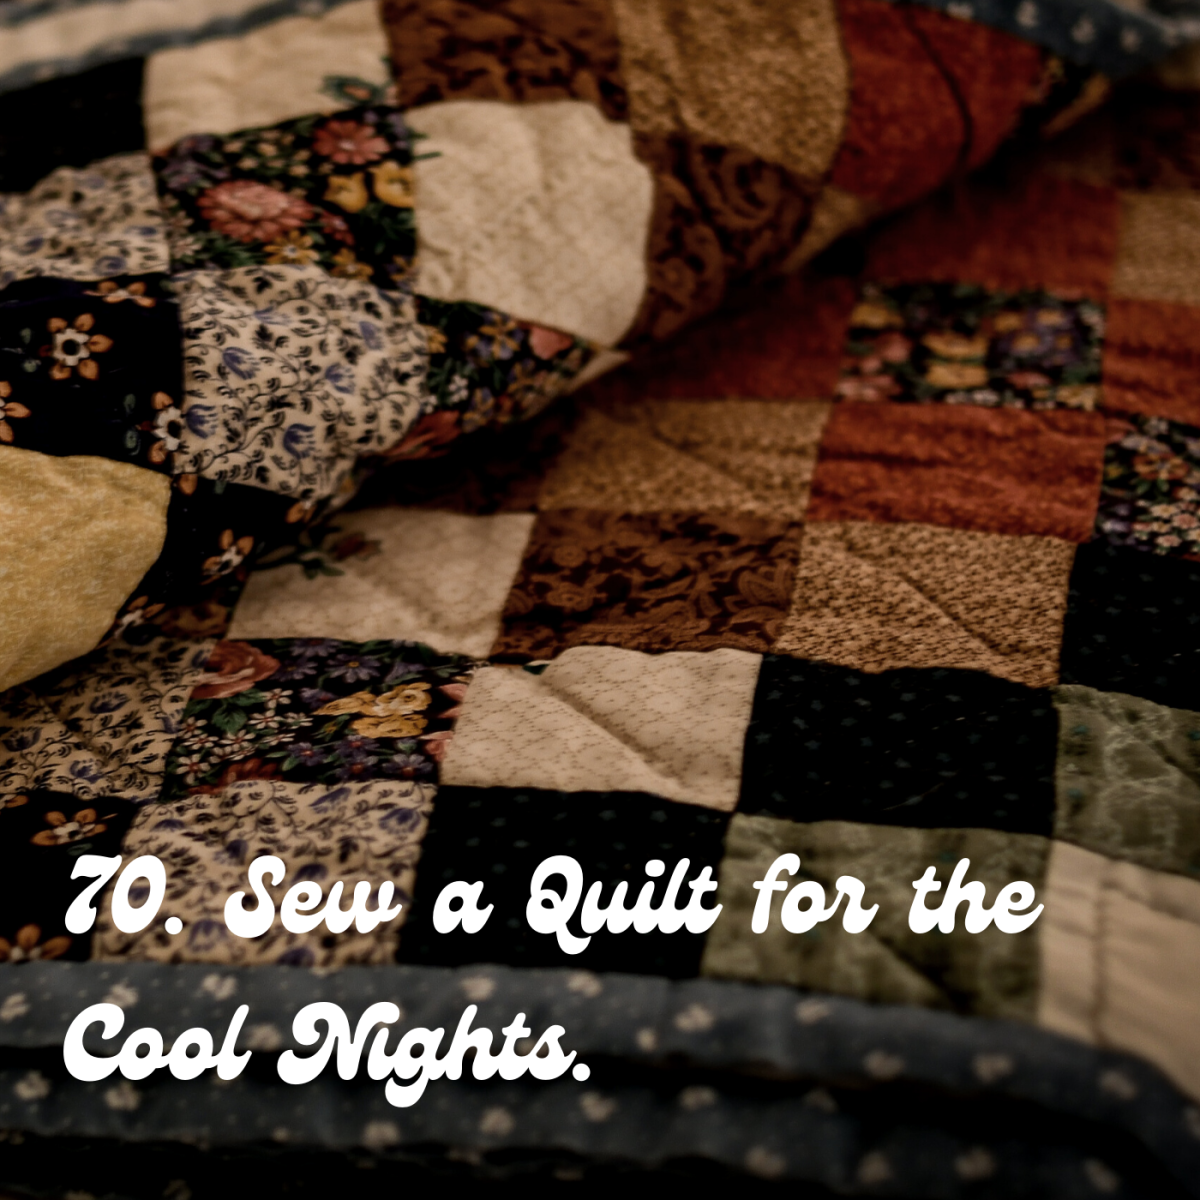 70. Sew a quilt for the cool nights.